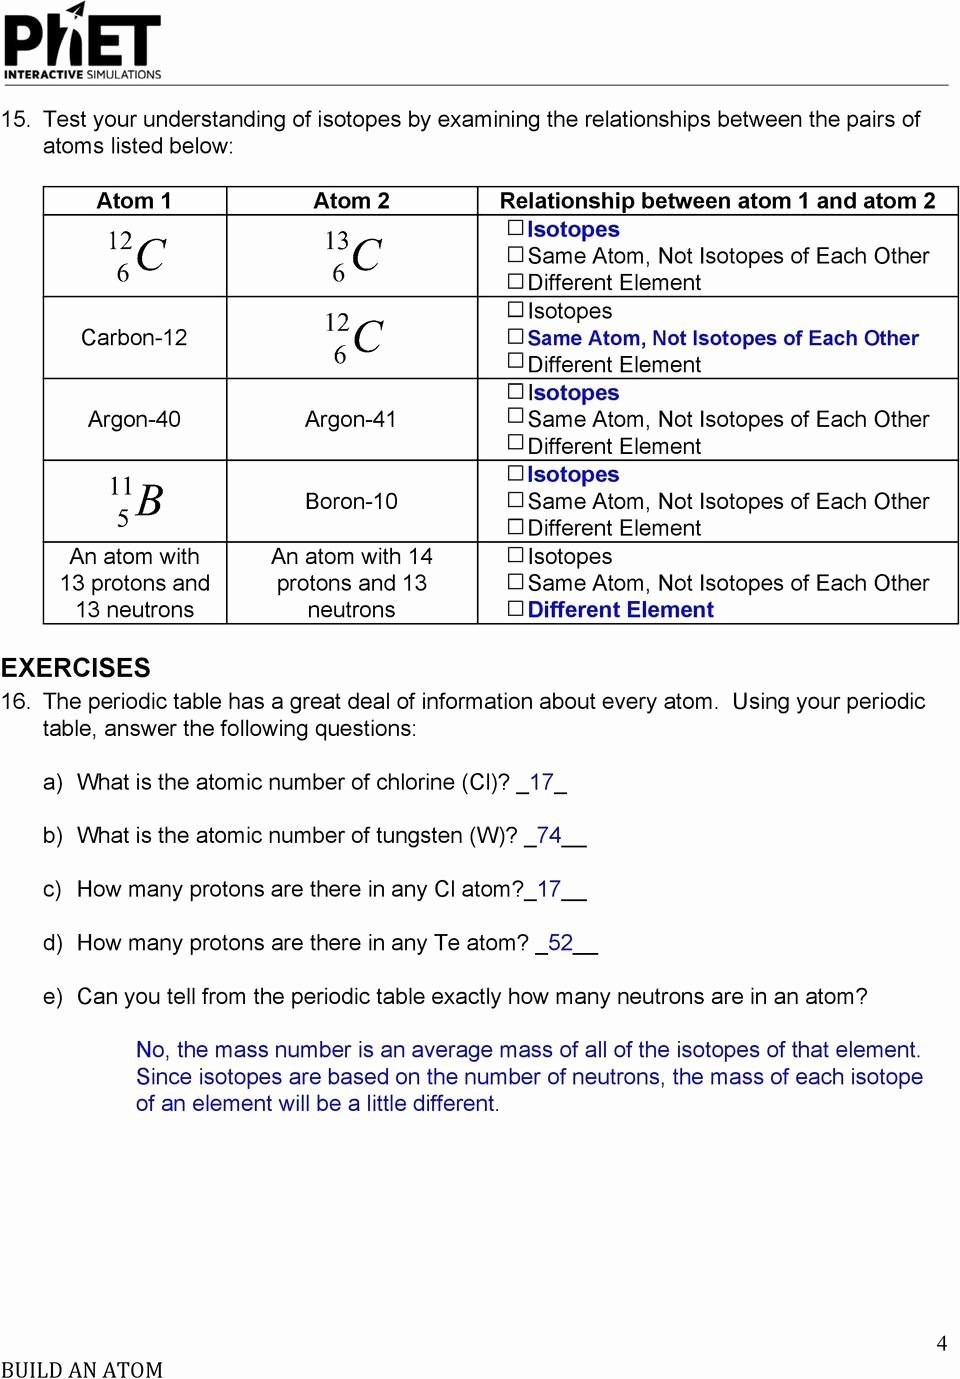 Phet Build An atom Worksheet Inspirational Electrons In atoms Worksheet Answers